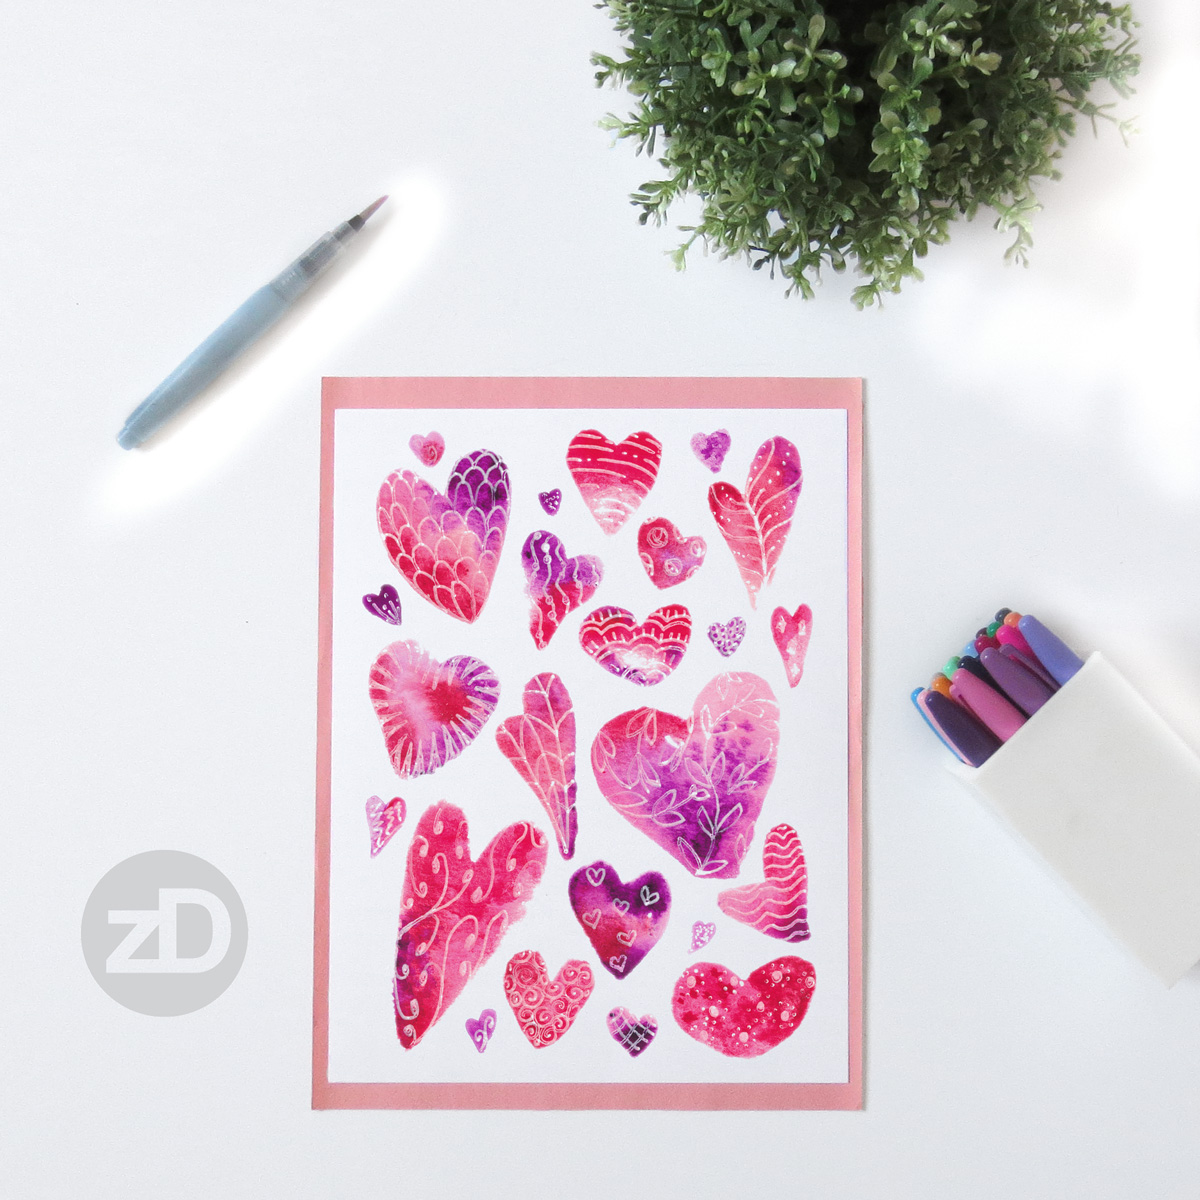 Zirkus Design | Watercolor Hearts Valentines Day Painting